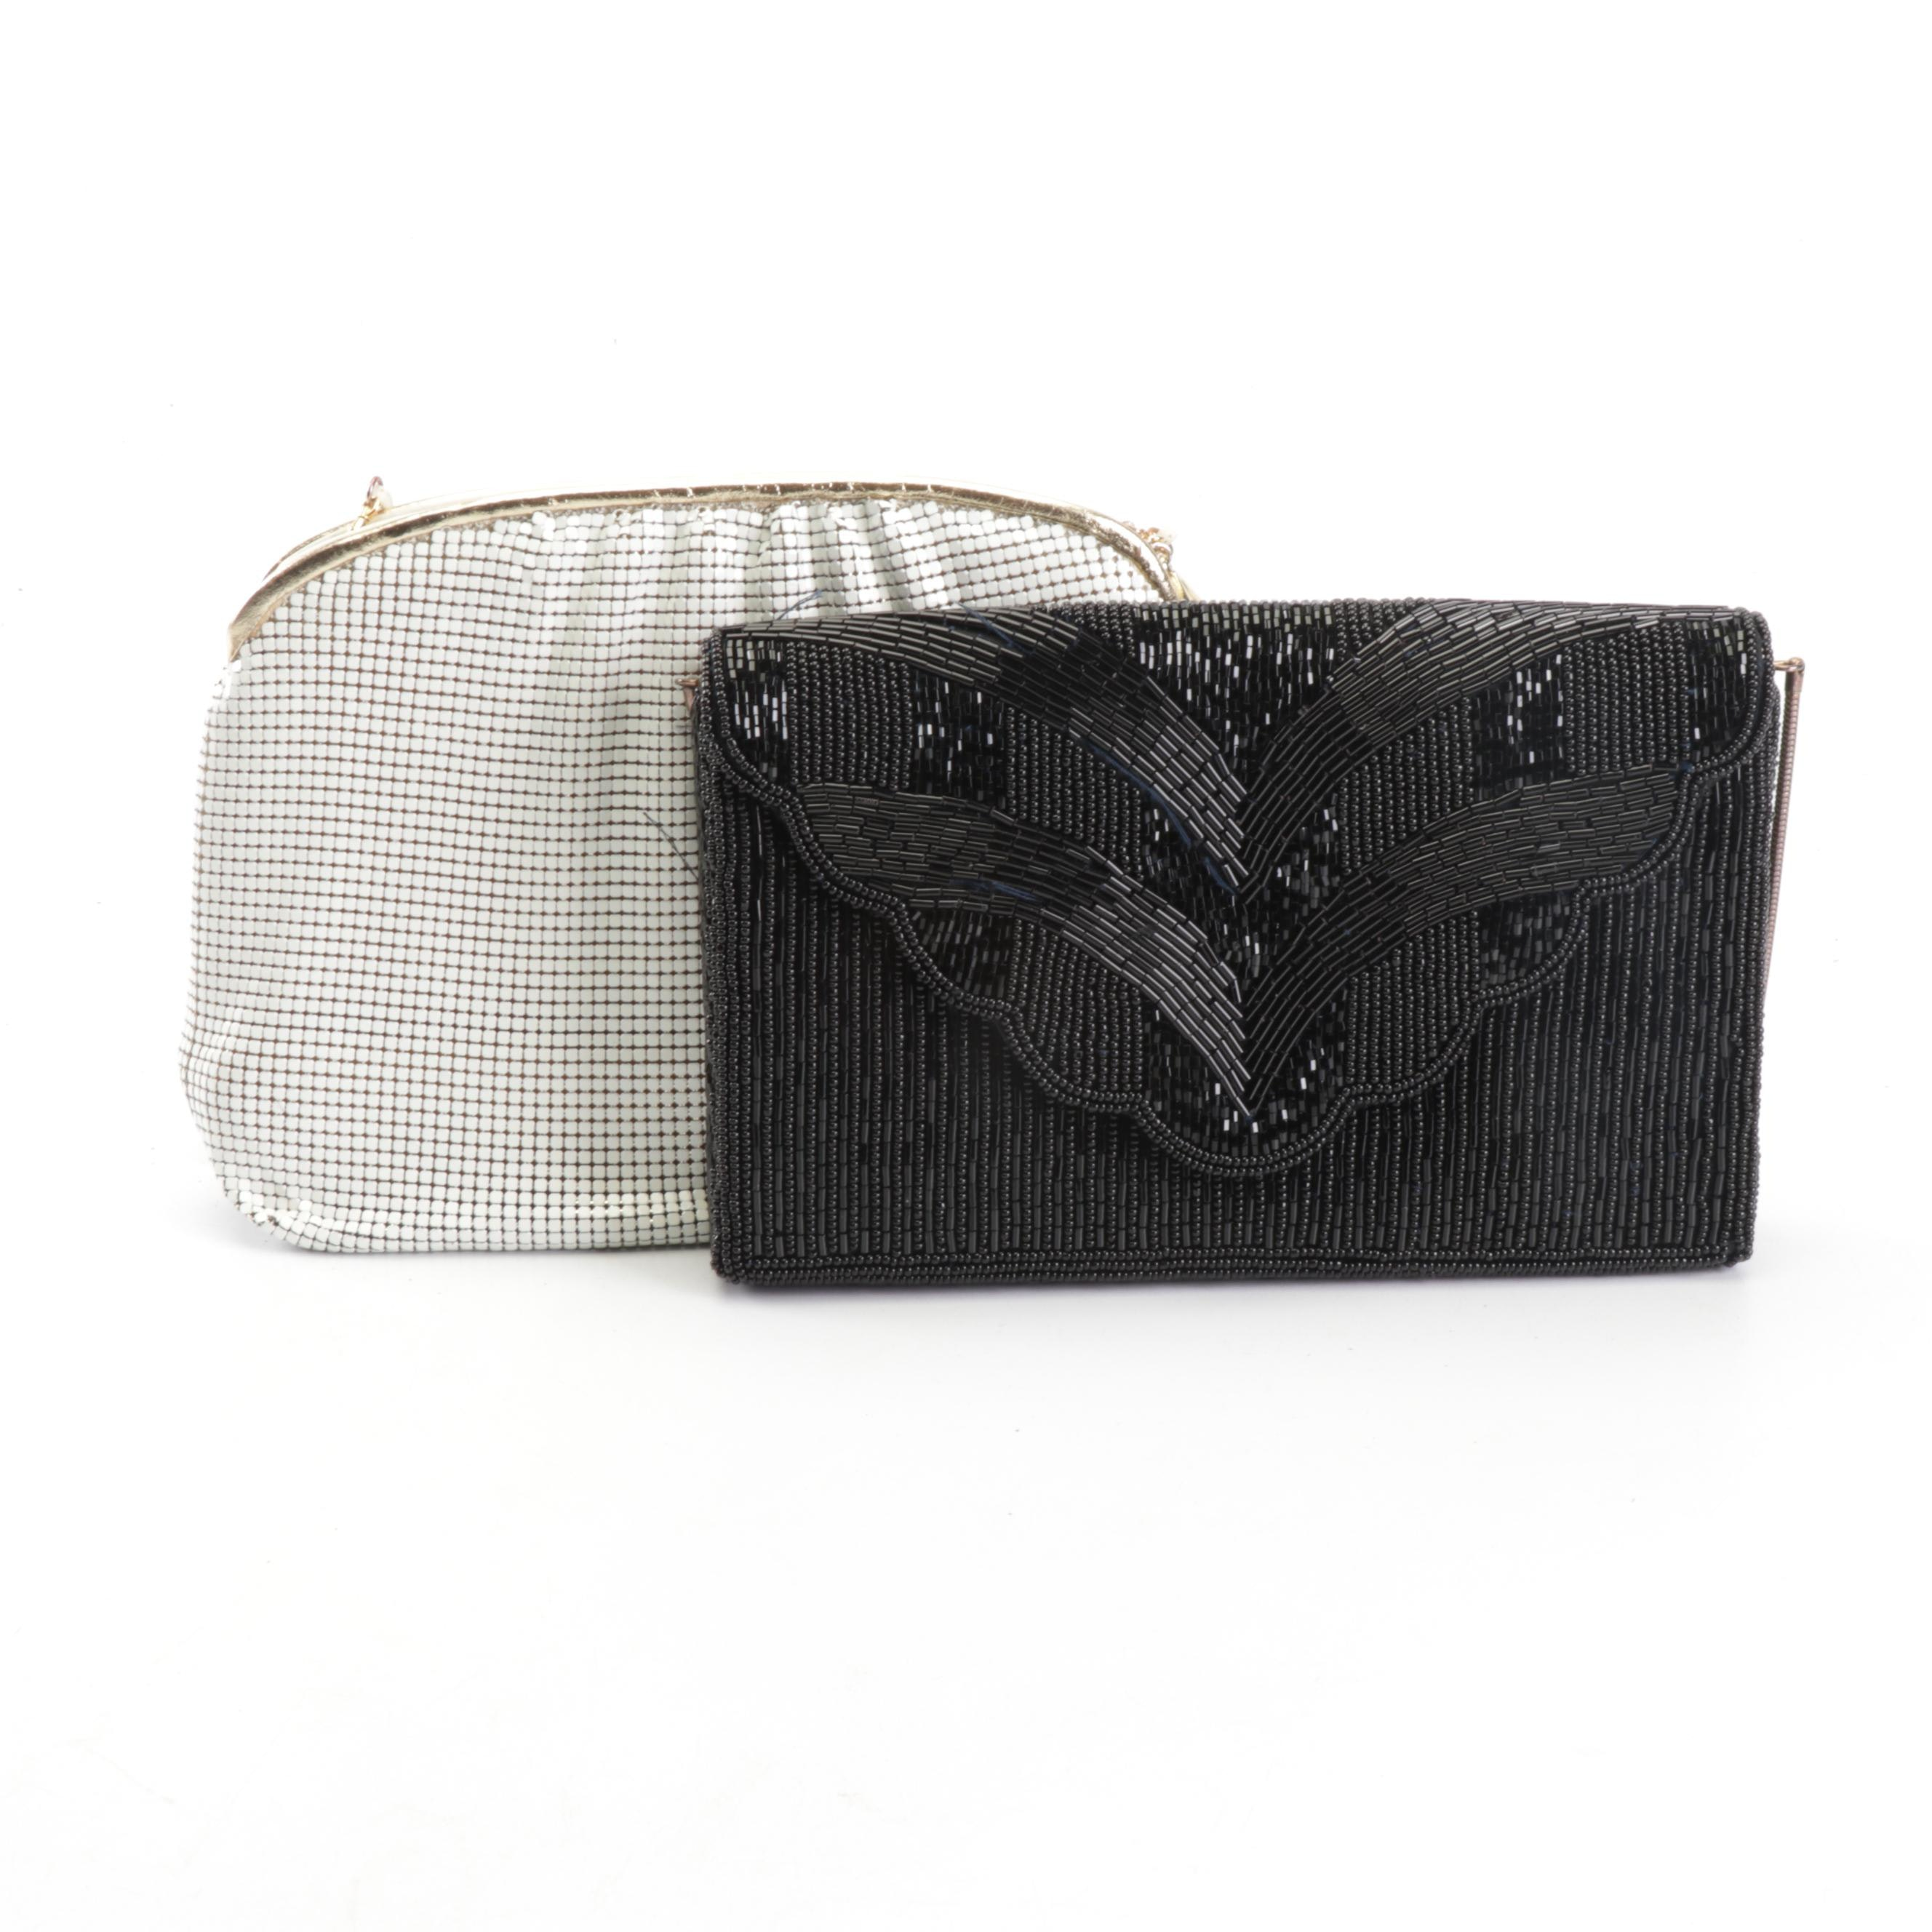 Whiting and Davis Enameled Mesh and Marshall Field's Beaded Evening Bags